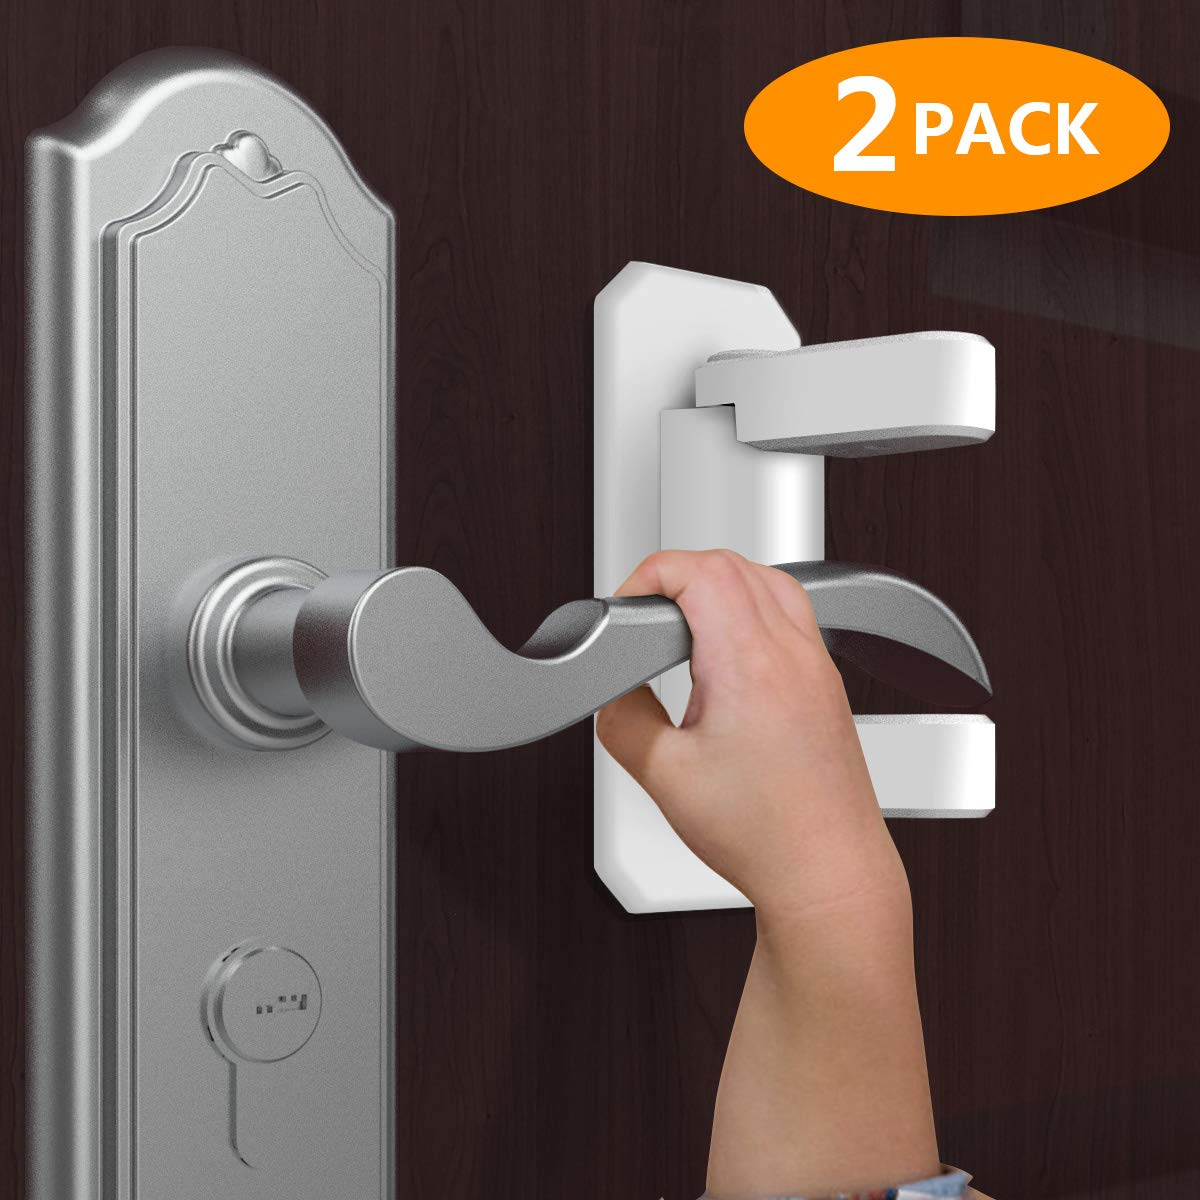 Child & Baby Safety Lock, Child Proof Doors & Handles with 3M Adhesive - 2 Pack